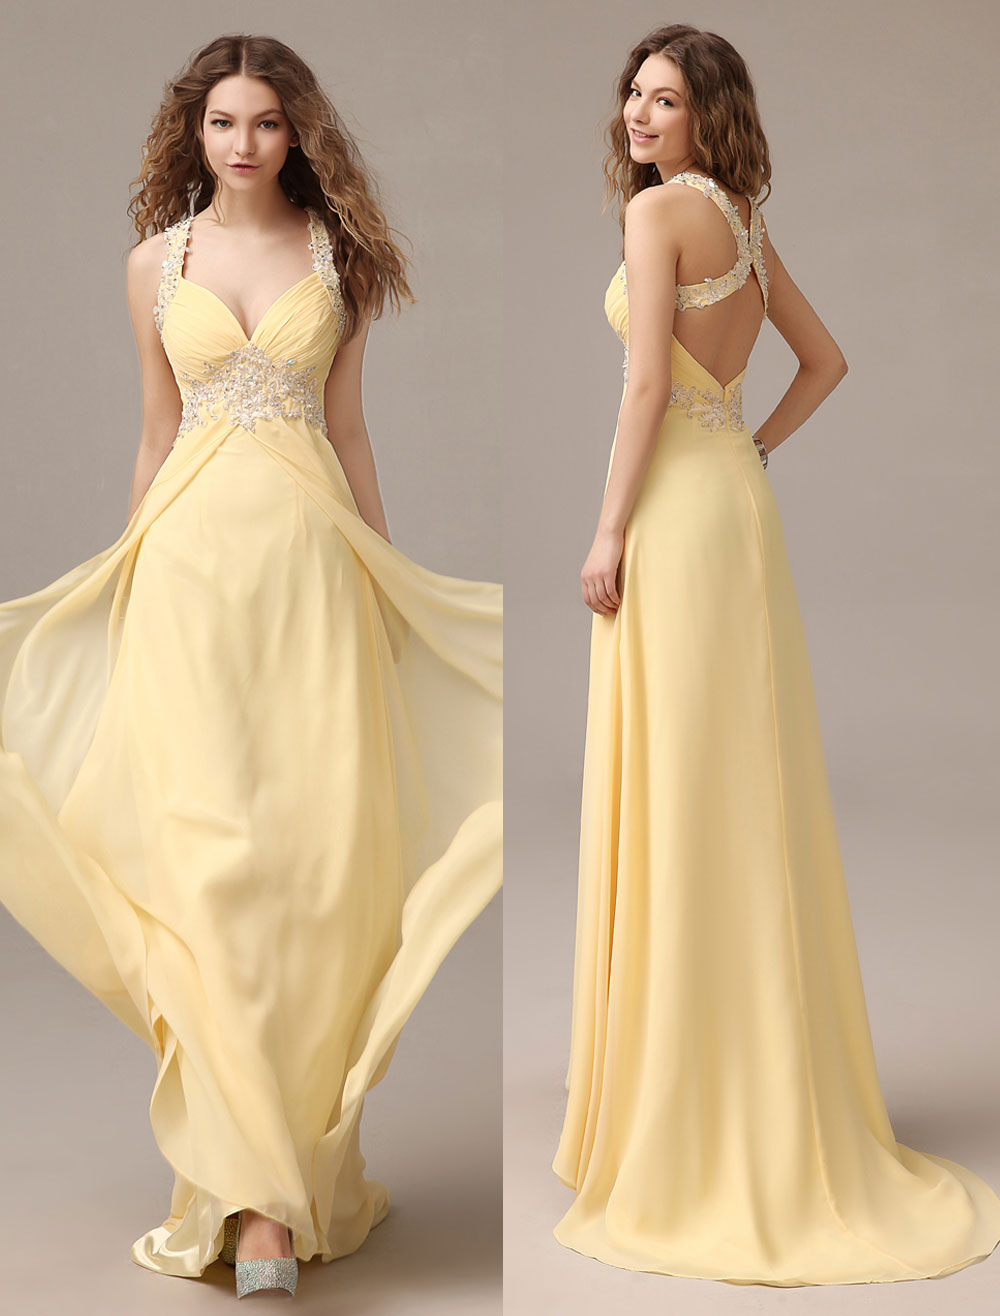 Prom Dresses Long Chiffon Daffodil Applique Beaded Evening Gown Back Design Sleeveless Formal Party Dresses With Train